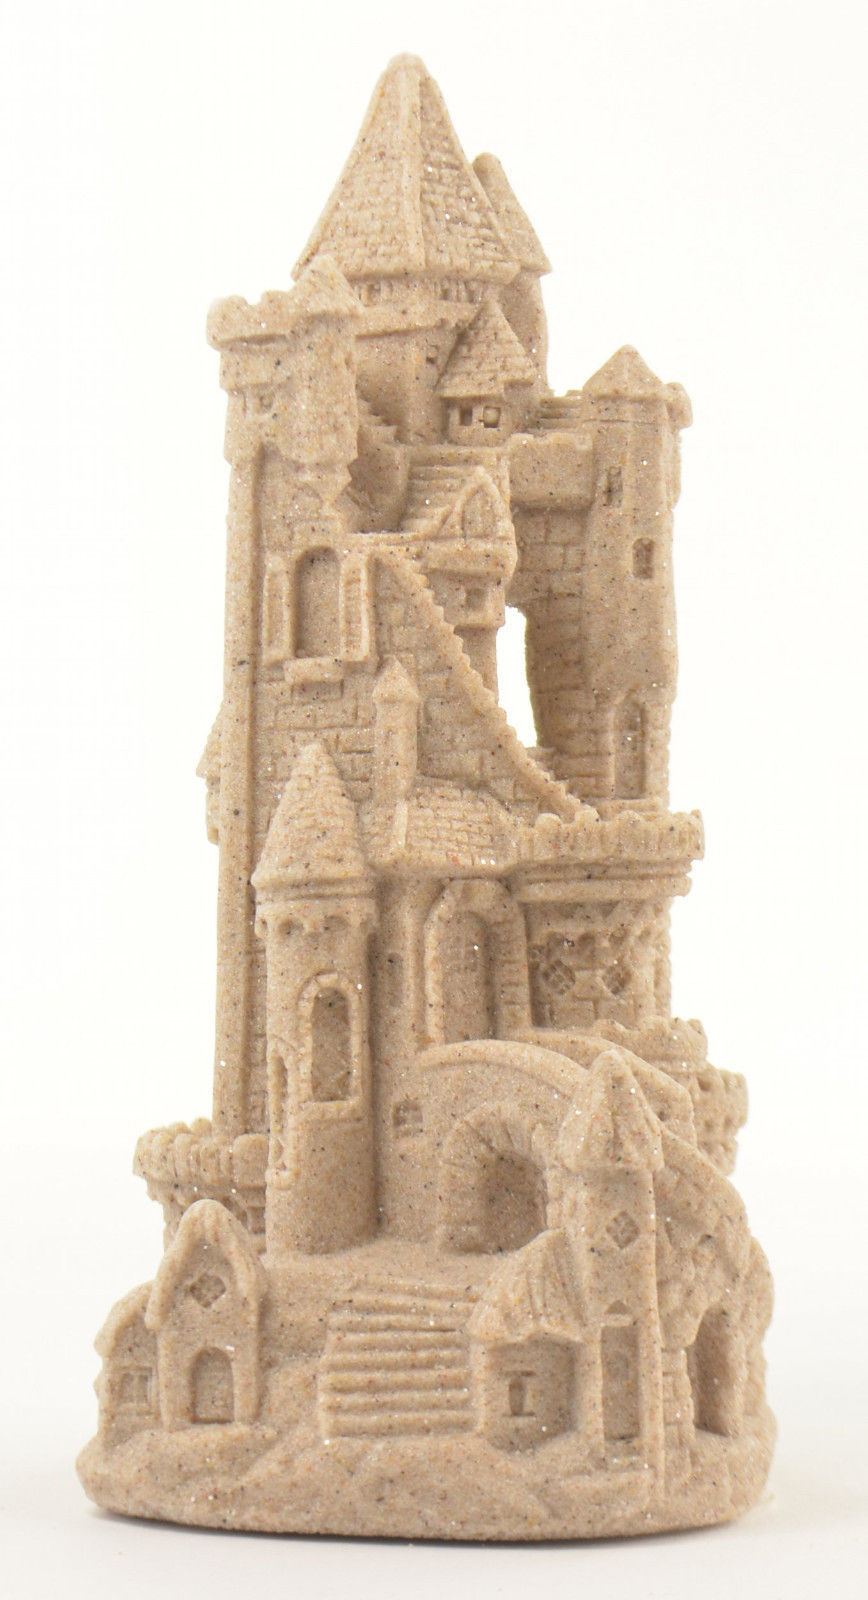 "Primary image for Mr. Sandman Sand Castle Figurine 465 7.25"" Tall Collectible Beach Wedding Decor"